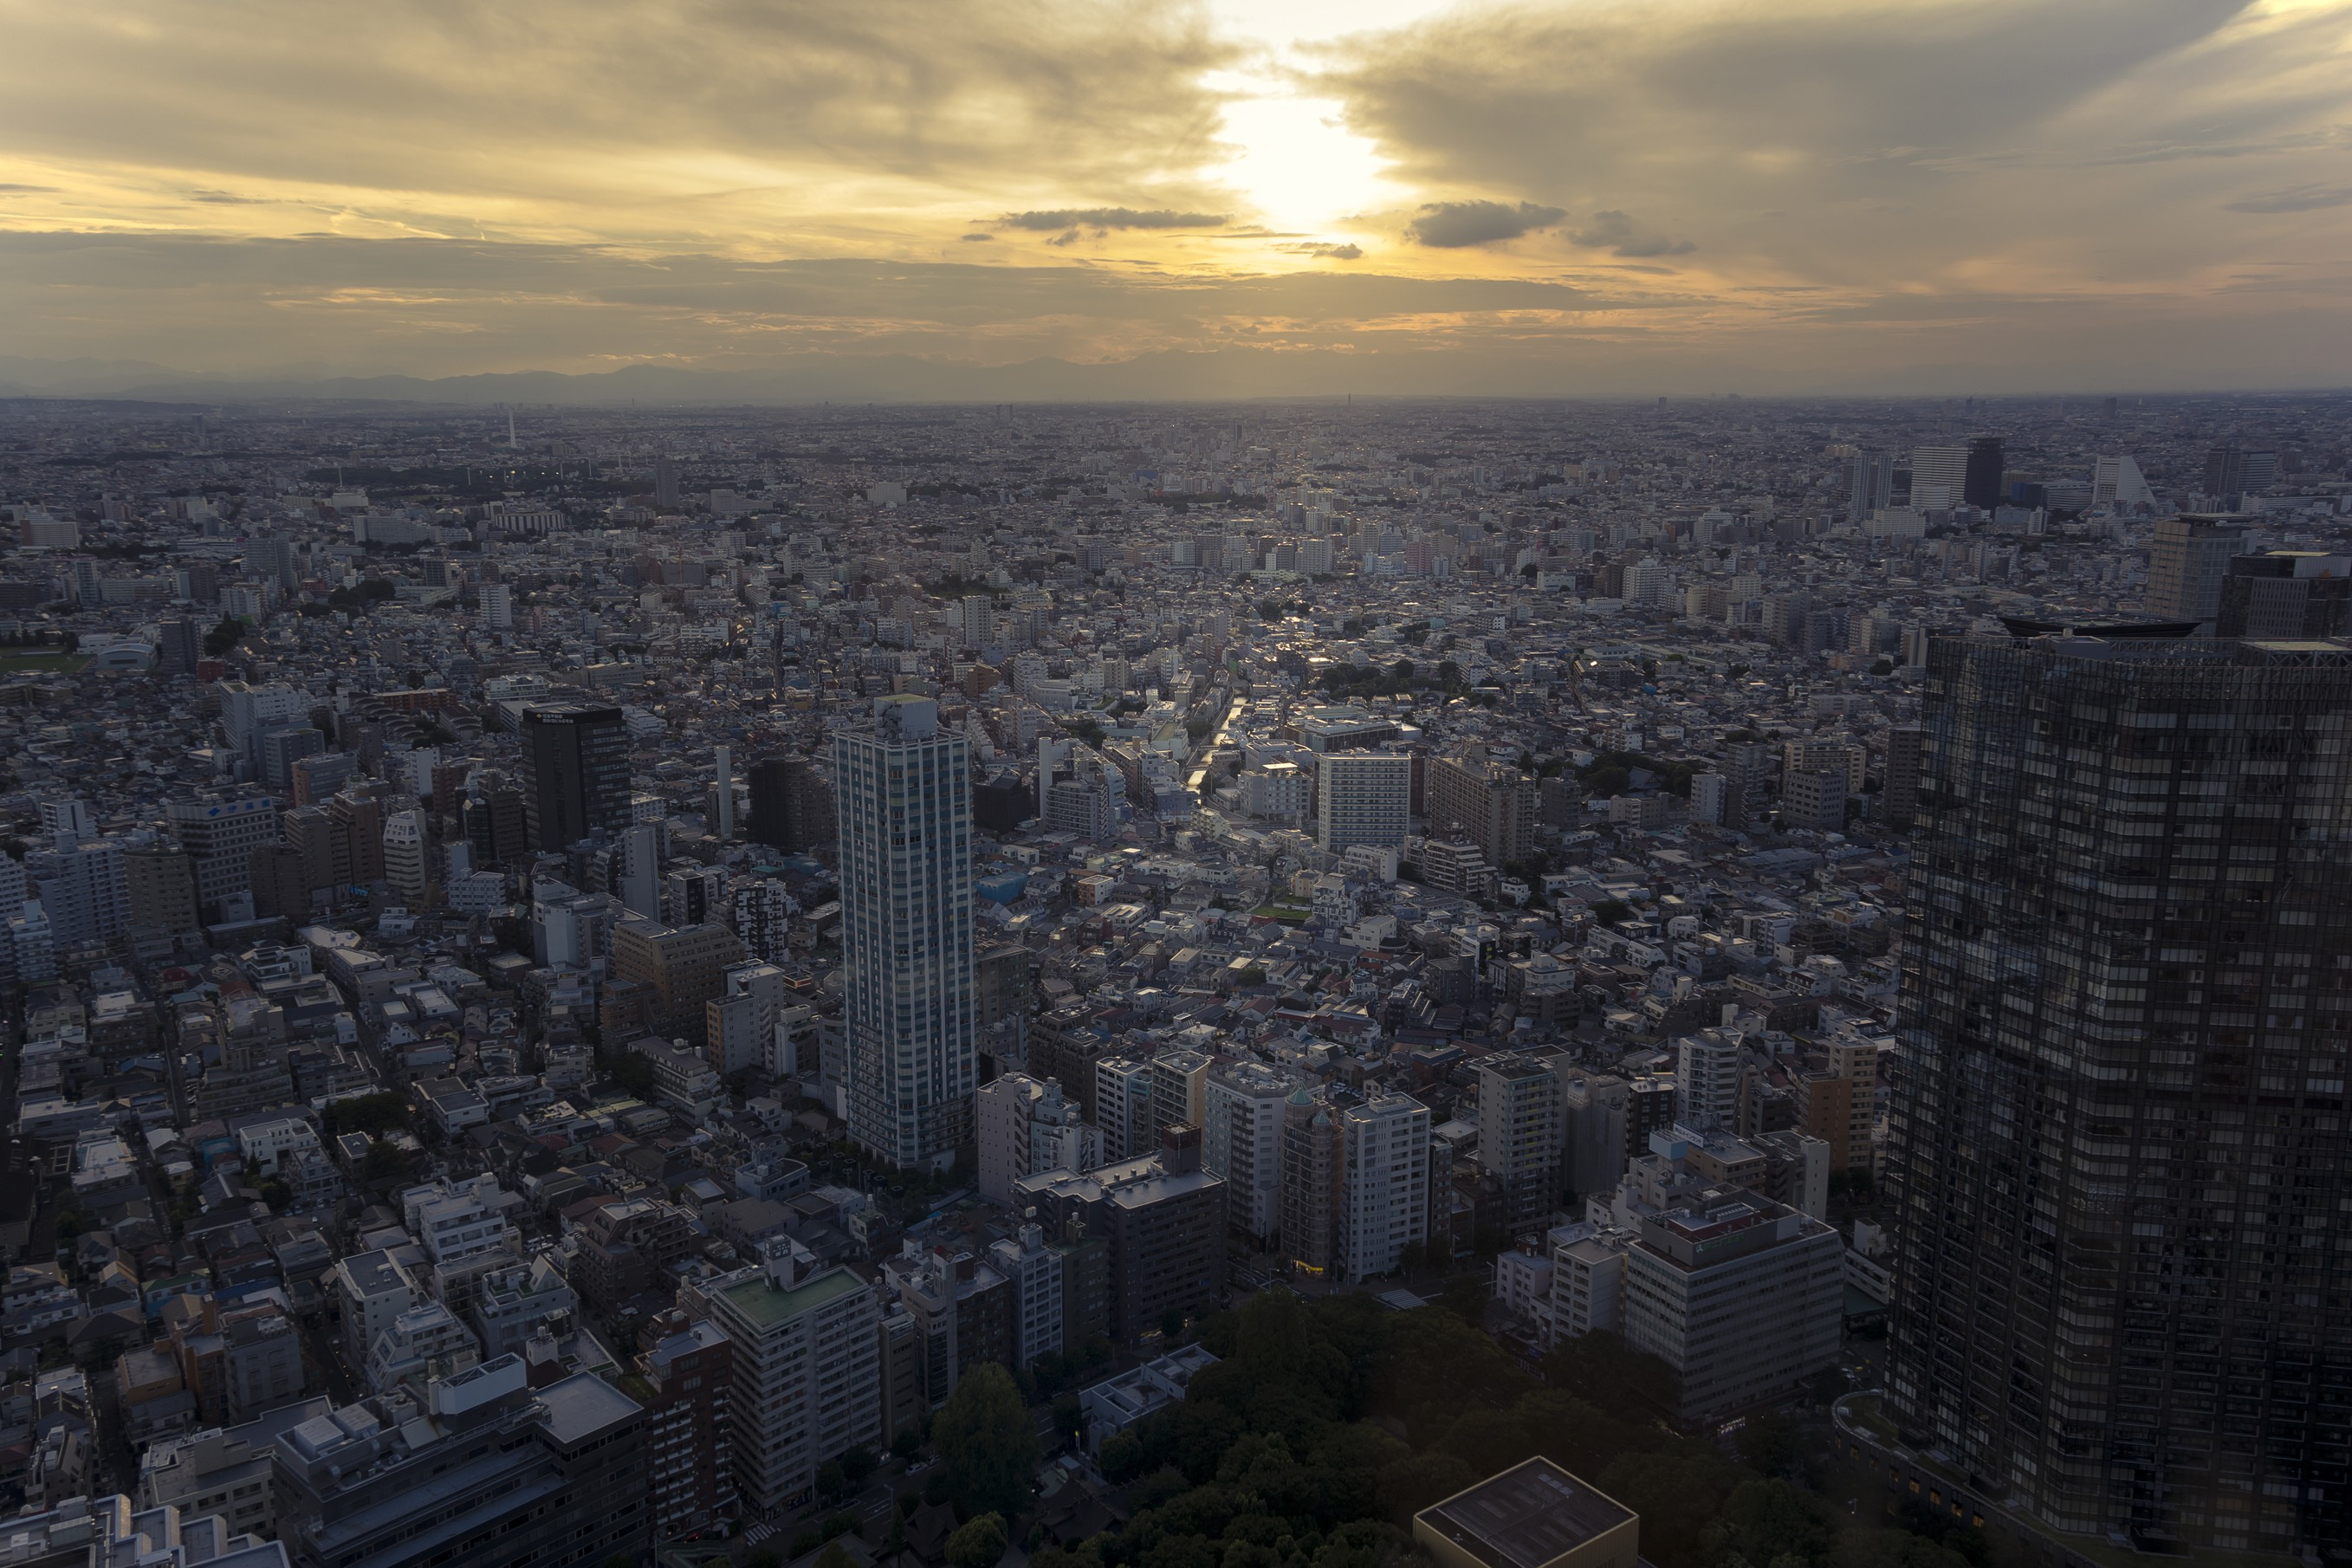 The view at dusk from the 45th floor of the Tokyo Metropolitan Government Offices building in the Japanese capital